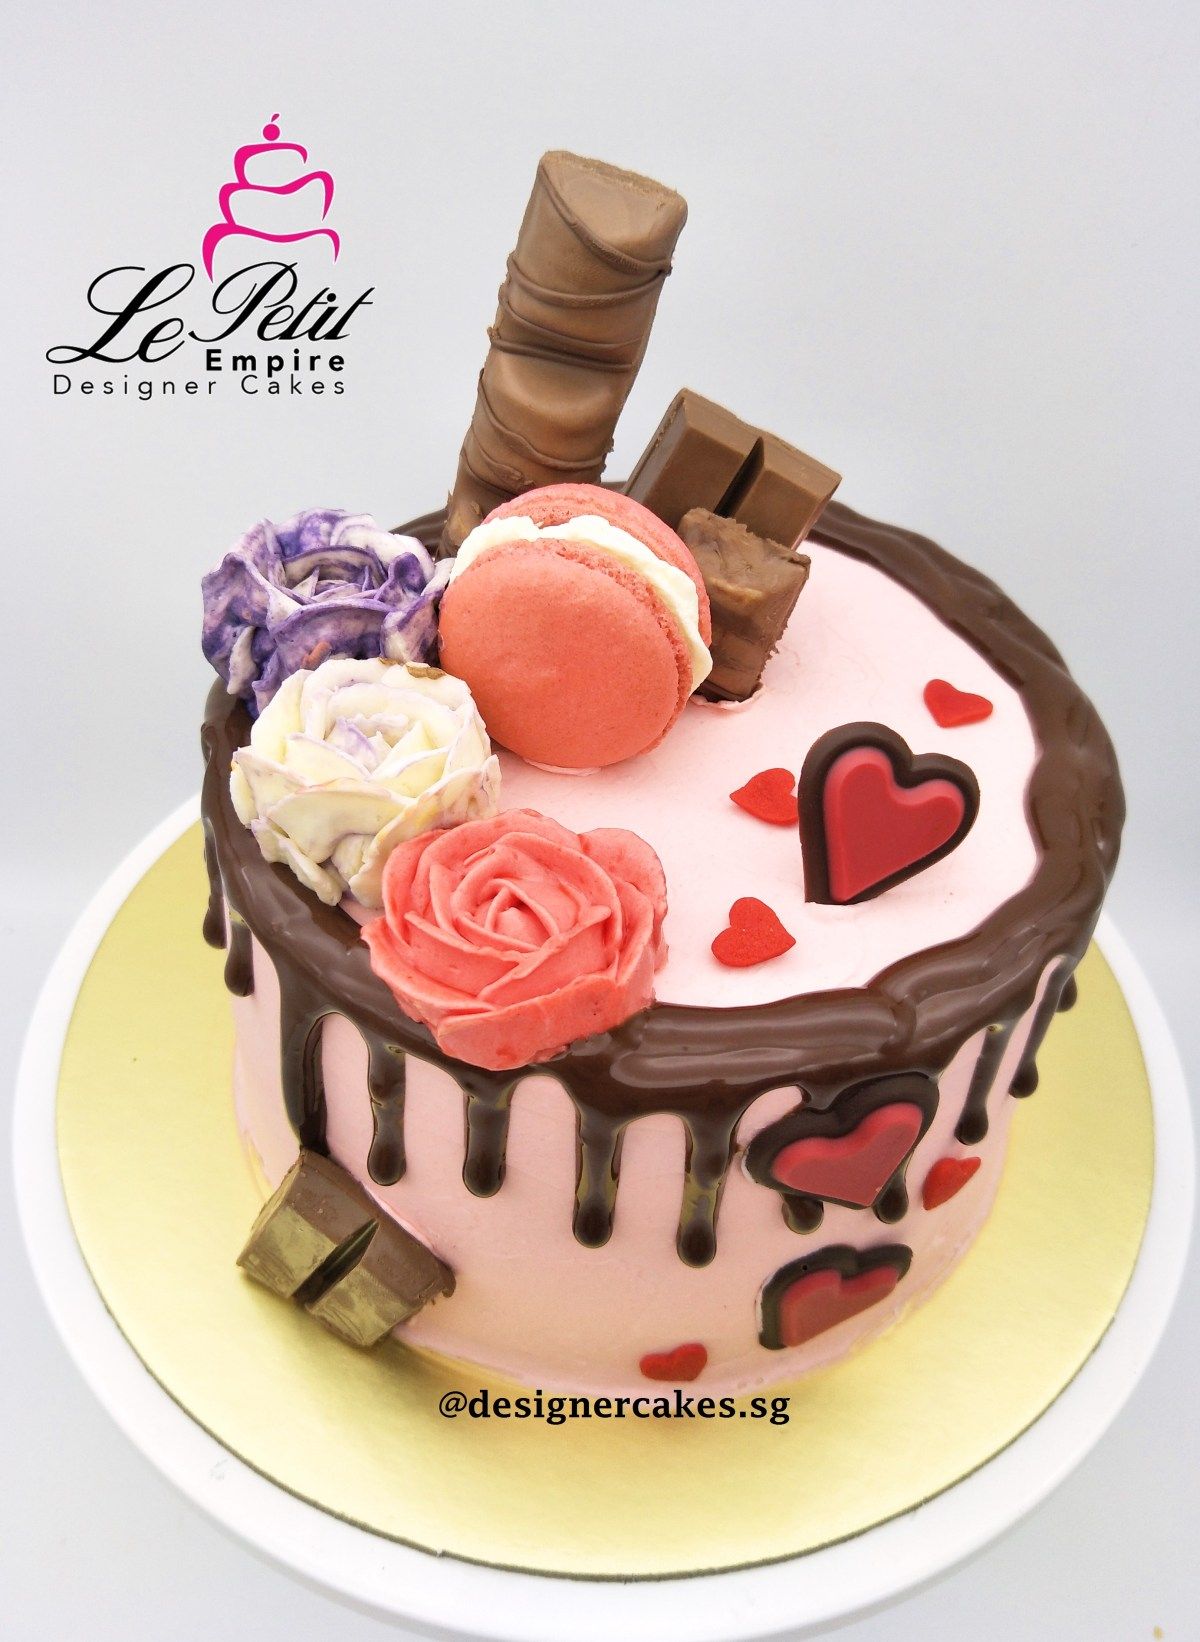 Drip Cake - Pink and chocolate drip cake with butter cream roses, chocolates, macarons and hearts. Singapore Customized Cakes